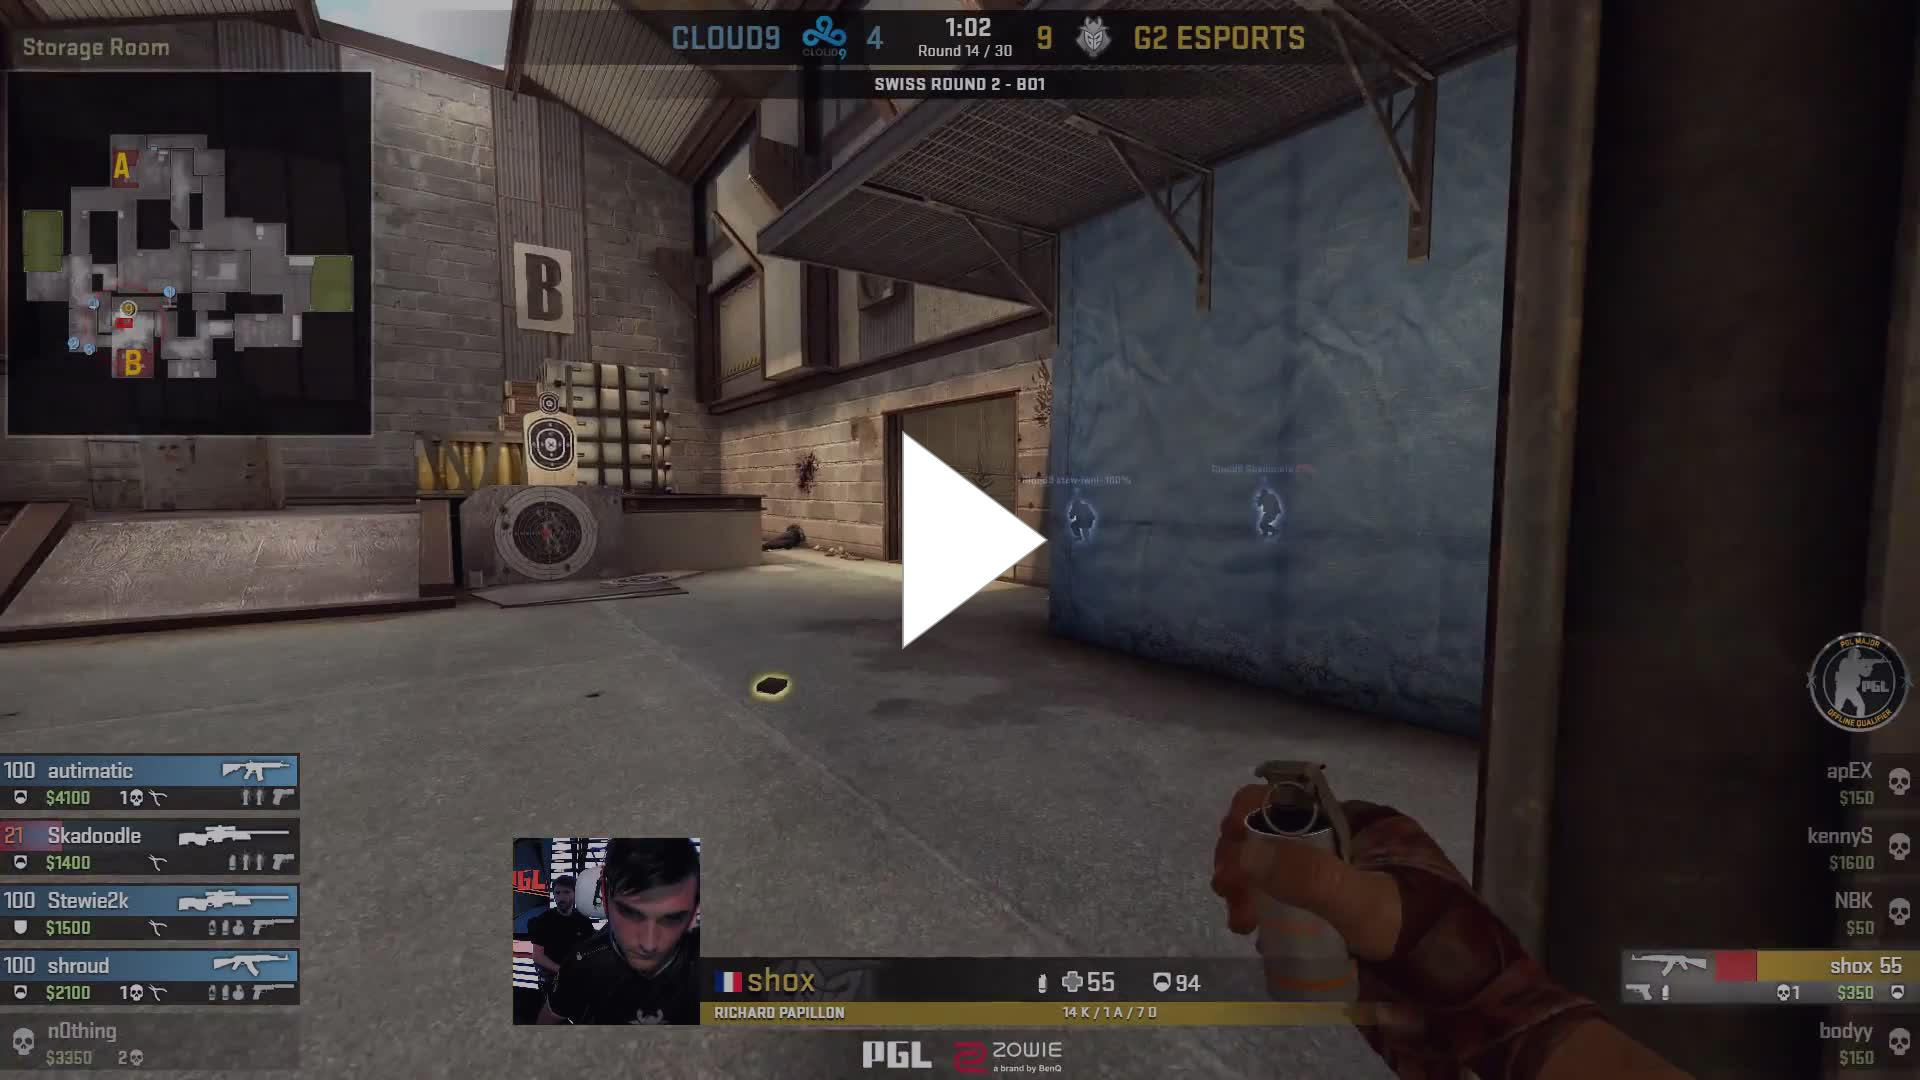 50 seconds of shox's beautiful crosshair placement